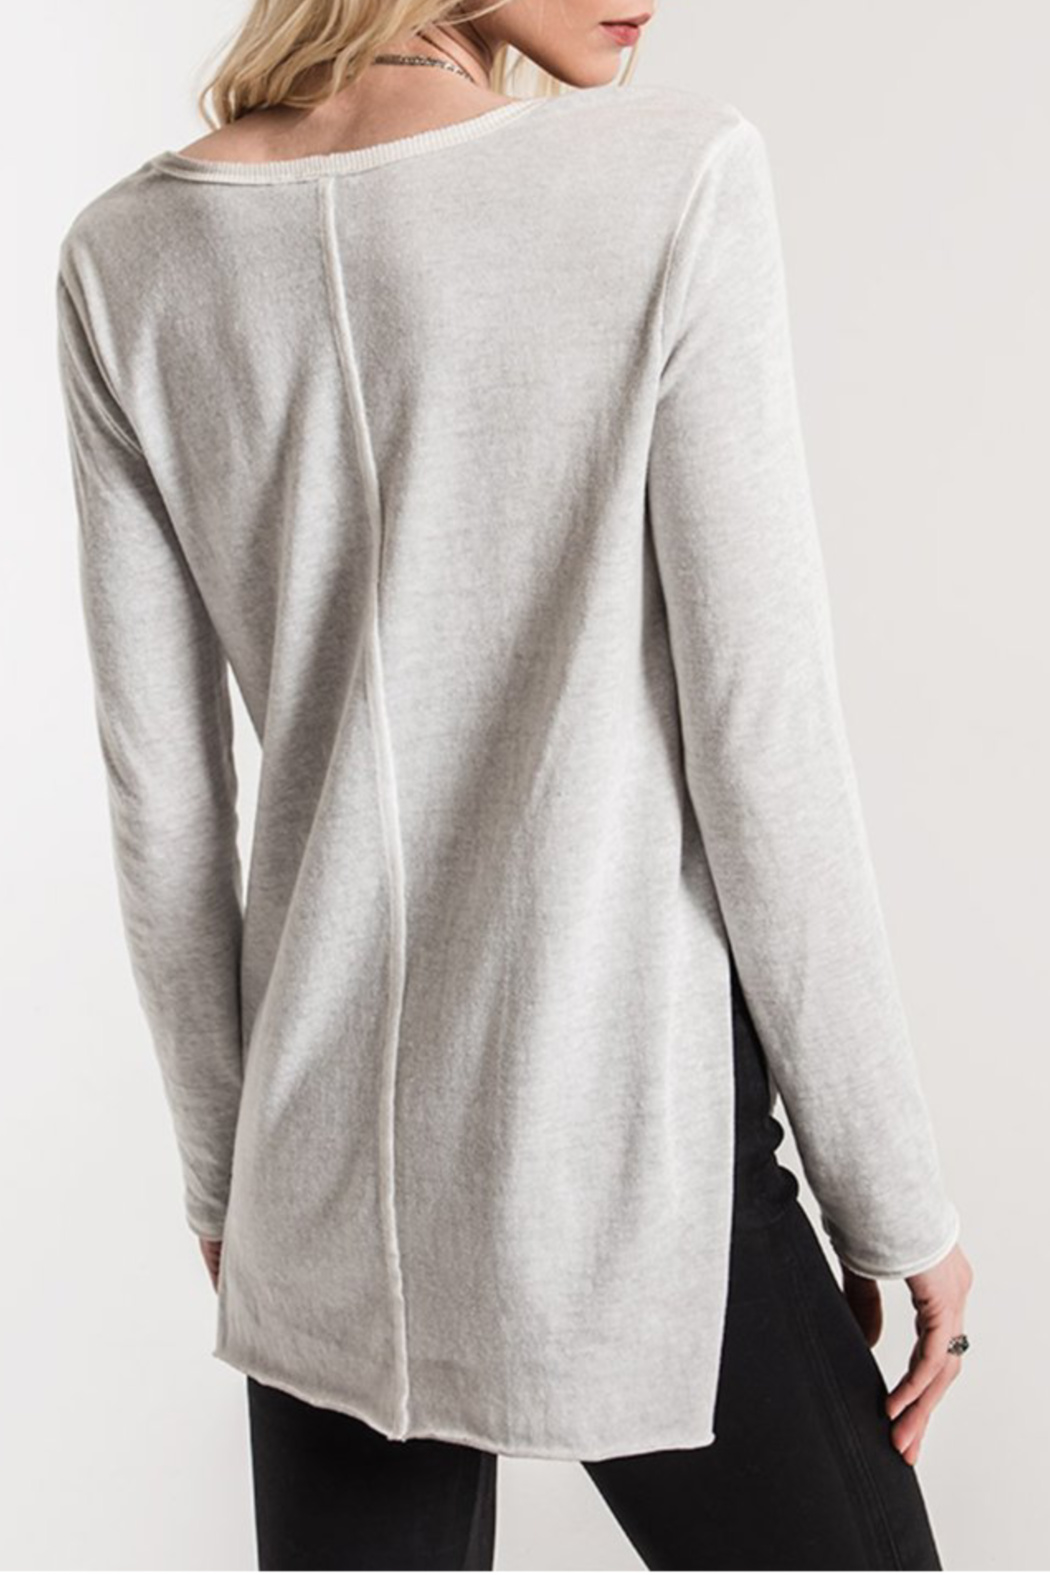 White Crow Holbrook L/S Top - Side Cropped Image